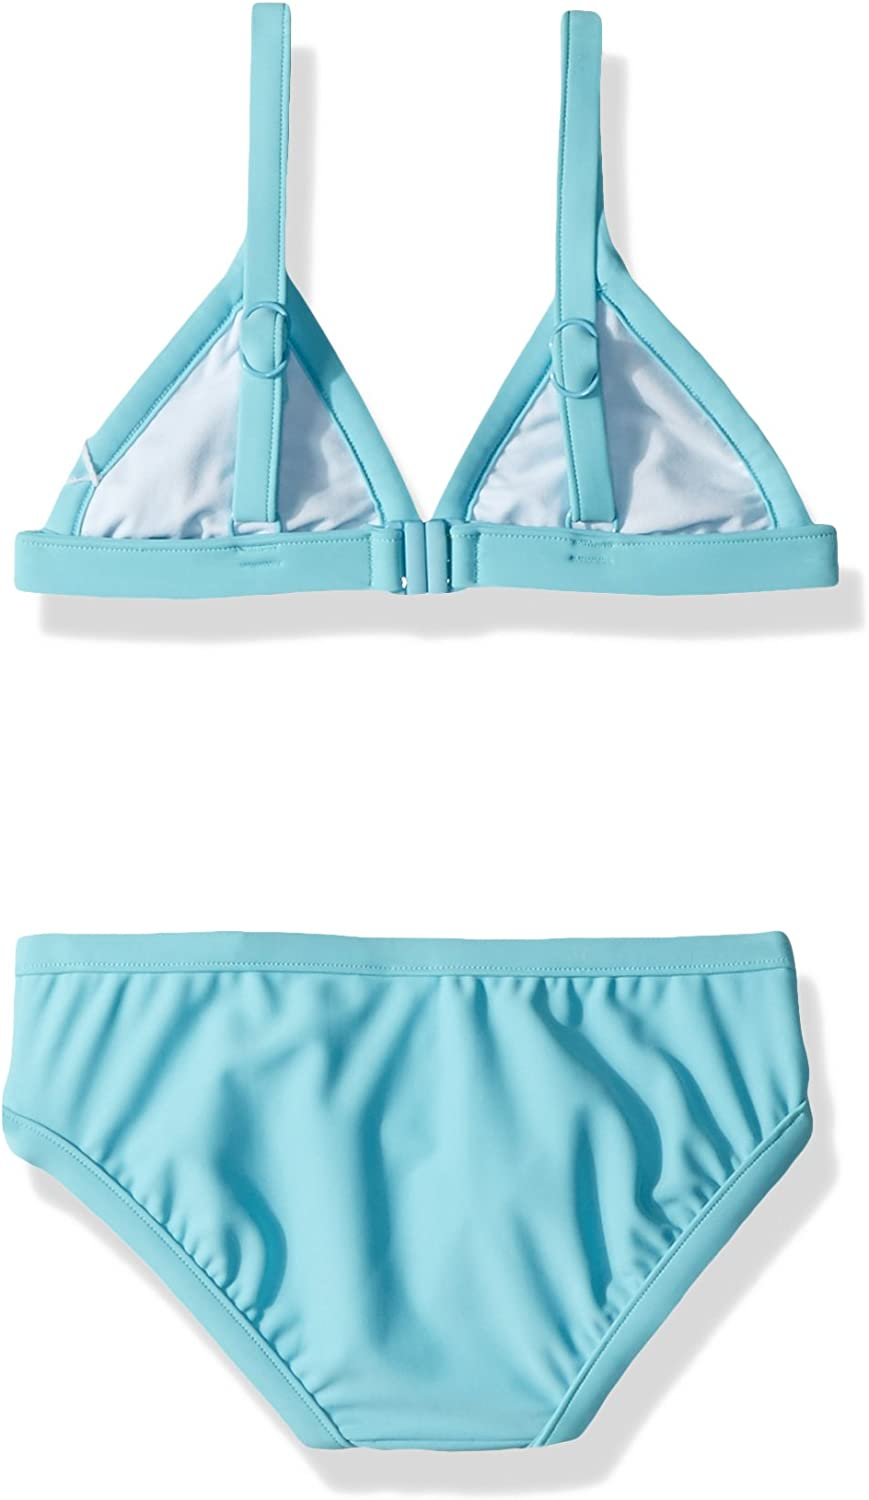 Seafolly Girls Tri Kini Swimsuit Two Piece Swimsuit